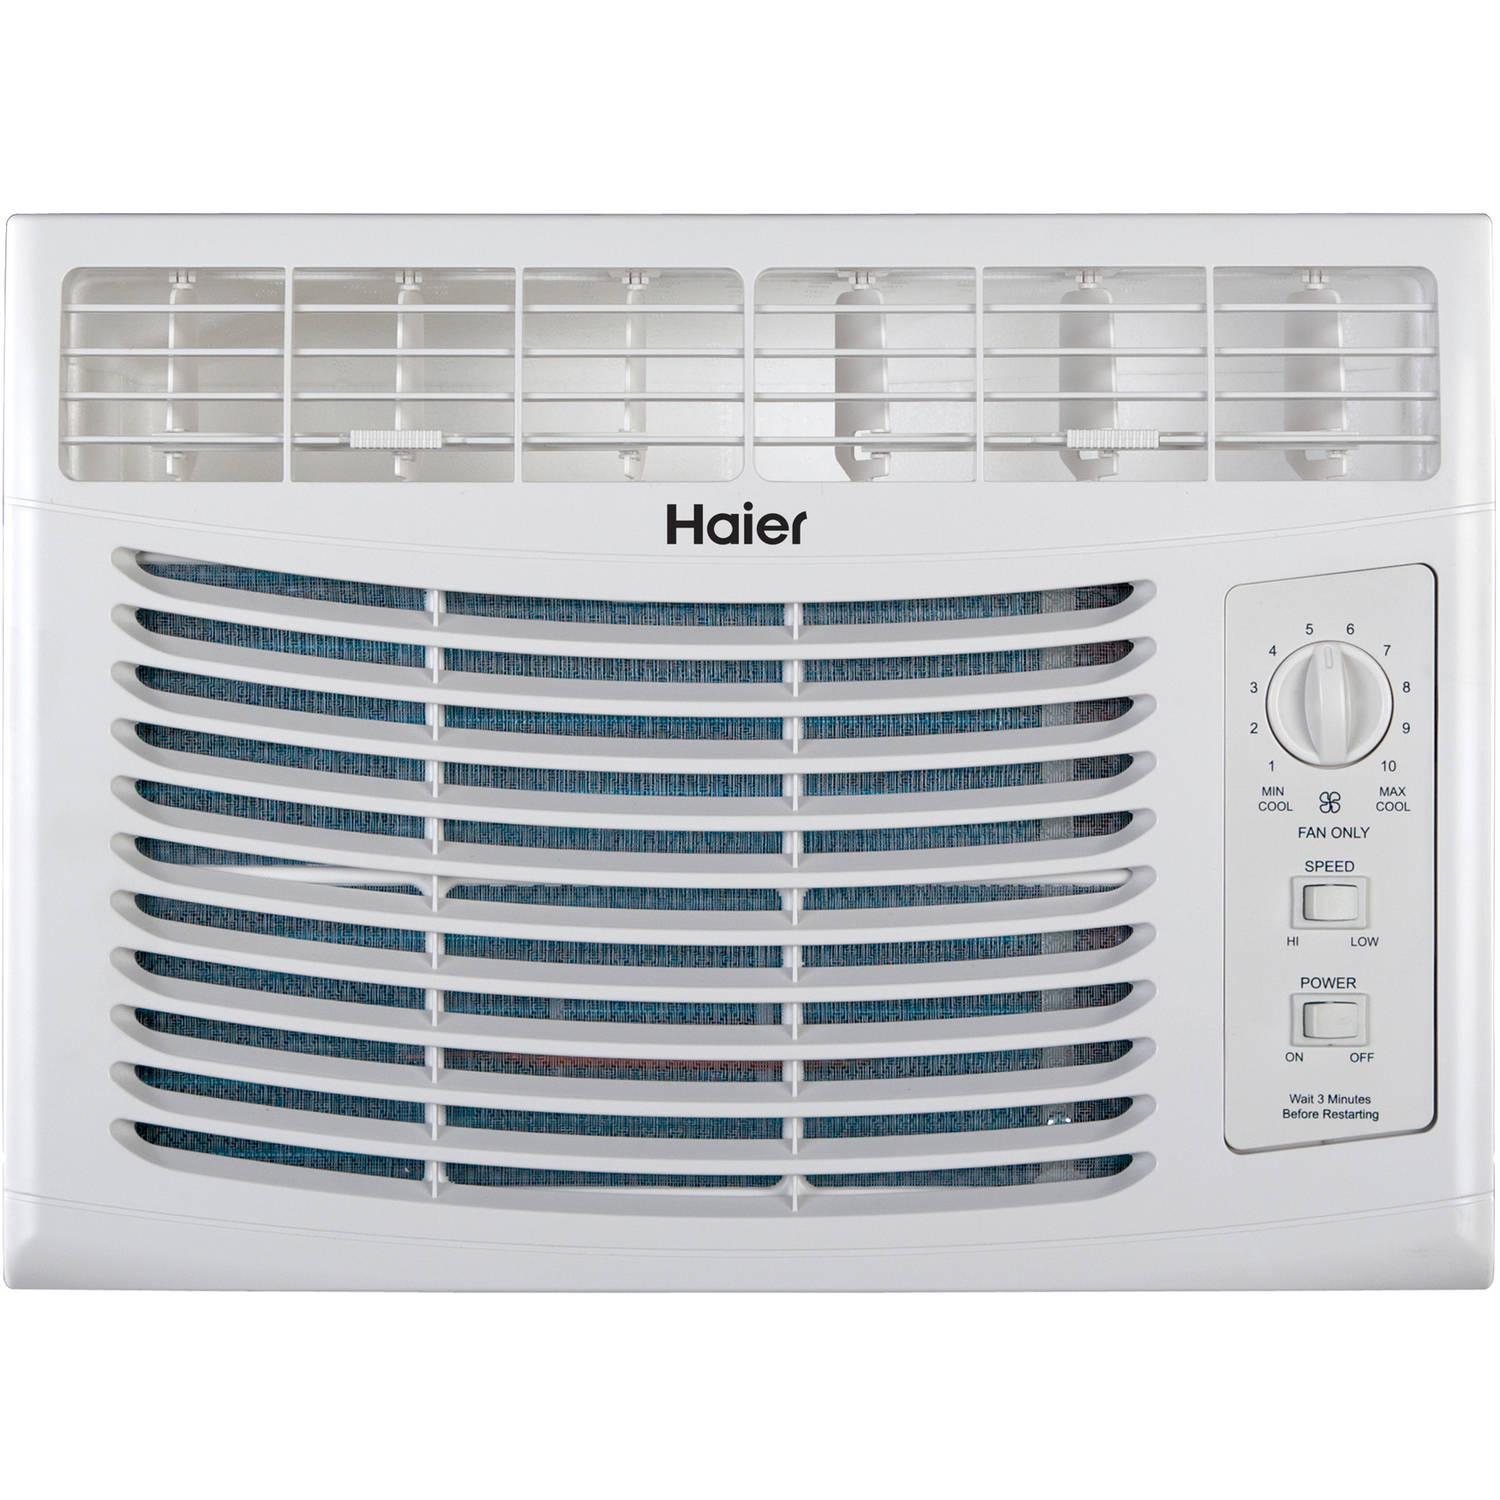 a0ba496f 06c3 4ad6 94b5 f70ad5dc3435_1.5ff0e9222656490bc15f9b304b3013d6 haier 5,000 btu window air conditioner, 115v, hwf05xcr l walmart com  at aneh.co